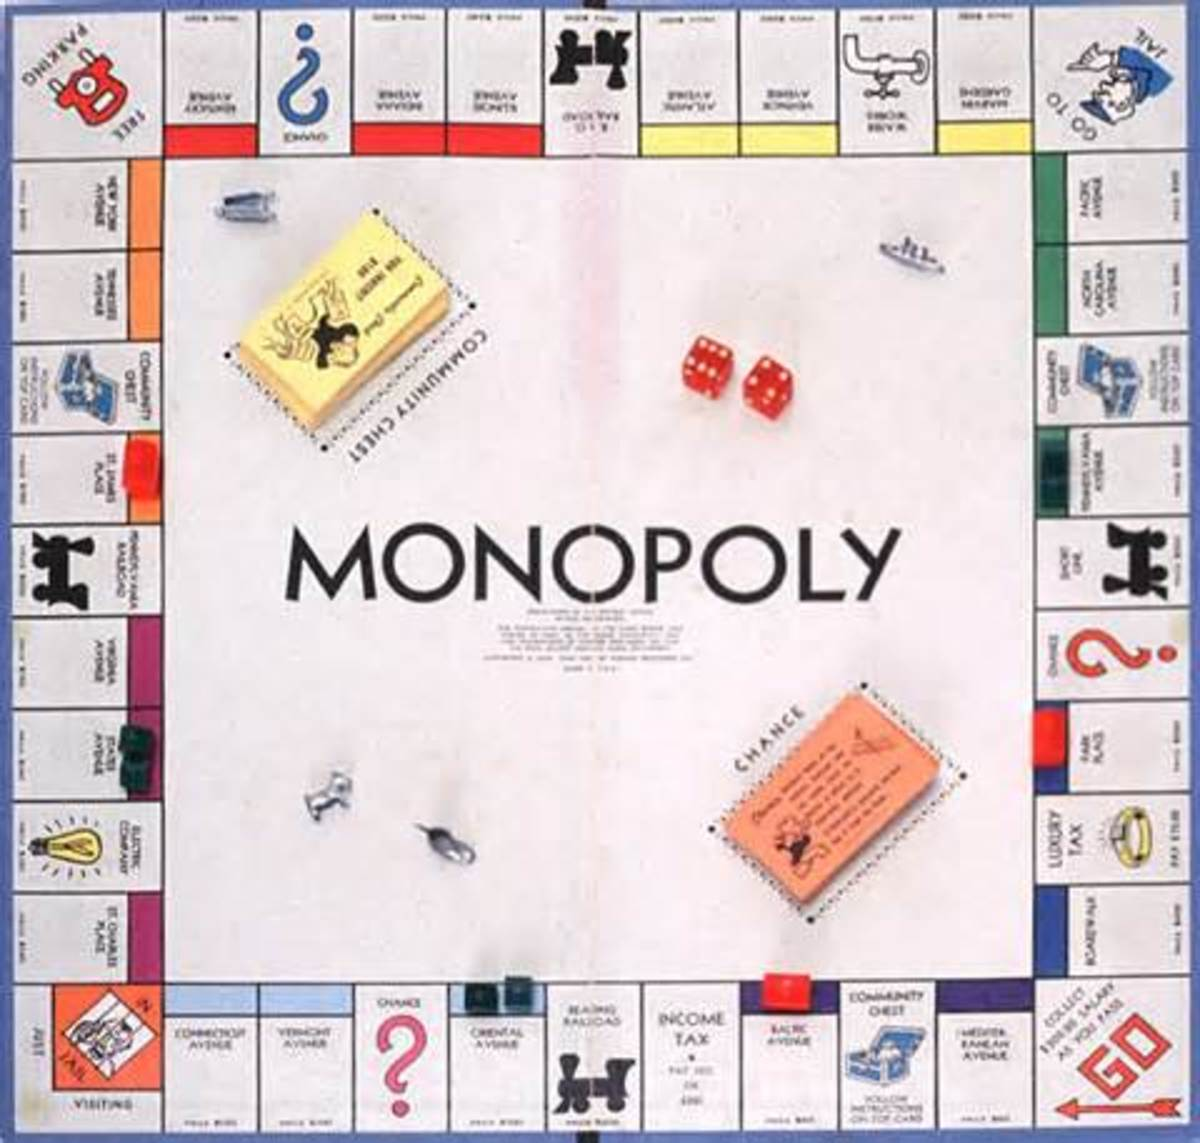 Everyone plays monopoly wrong